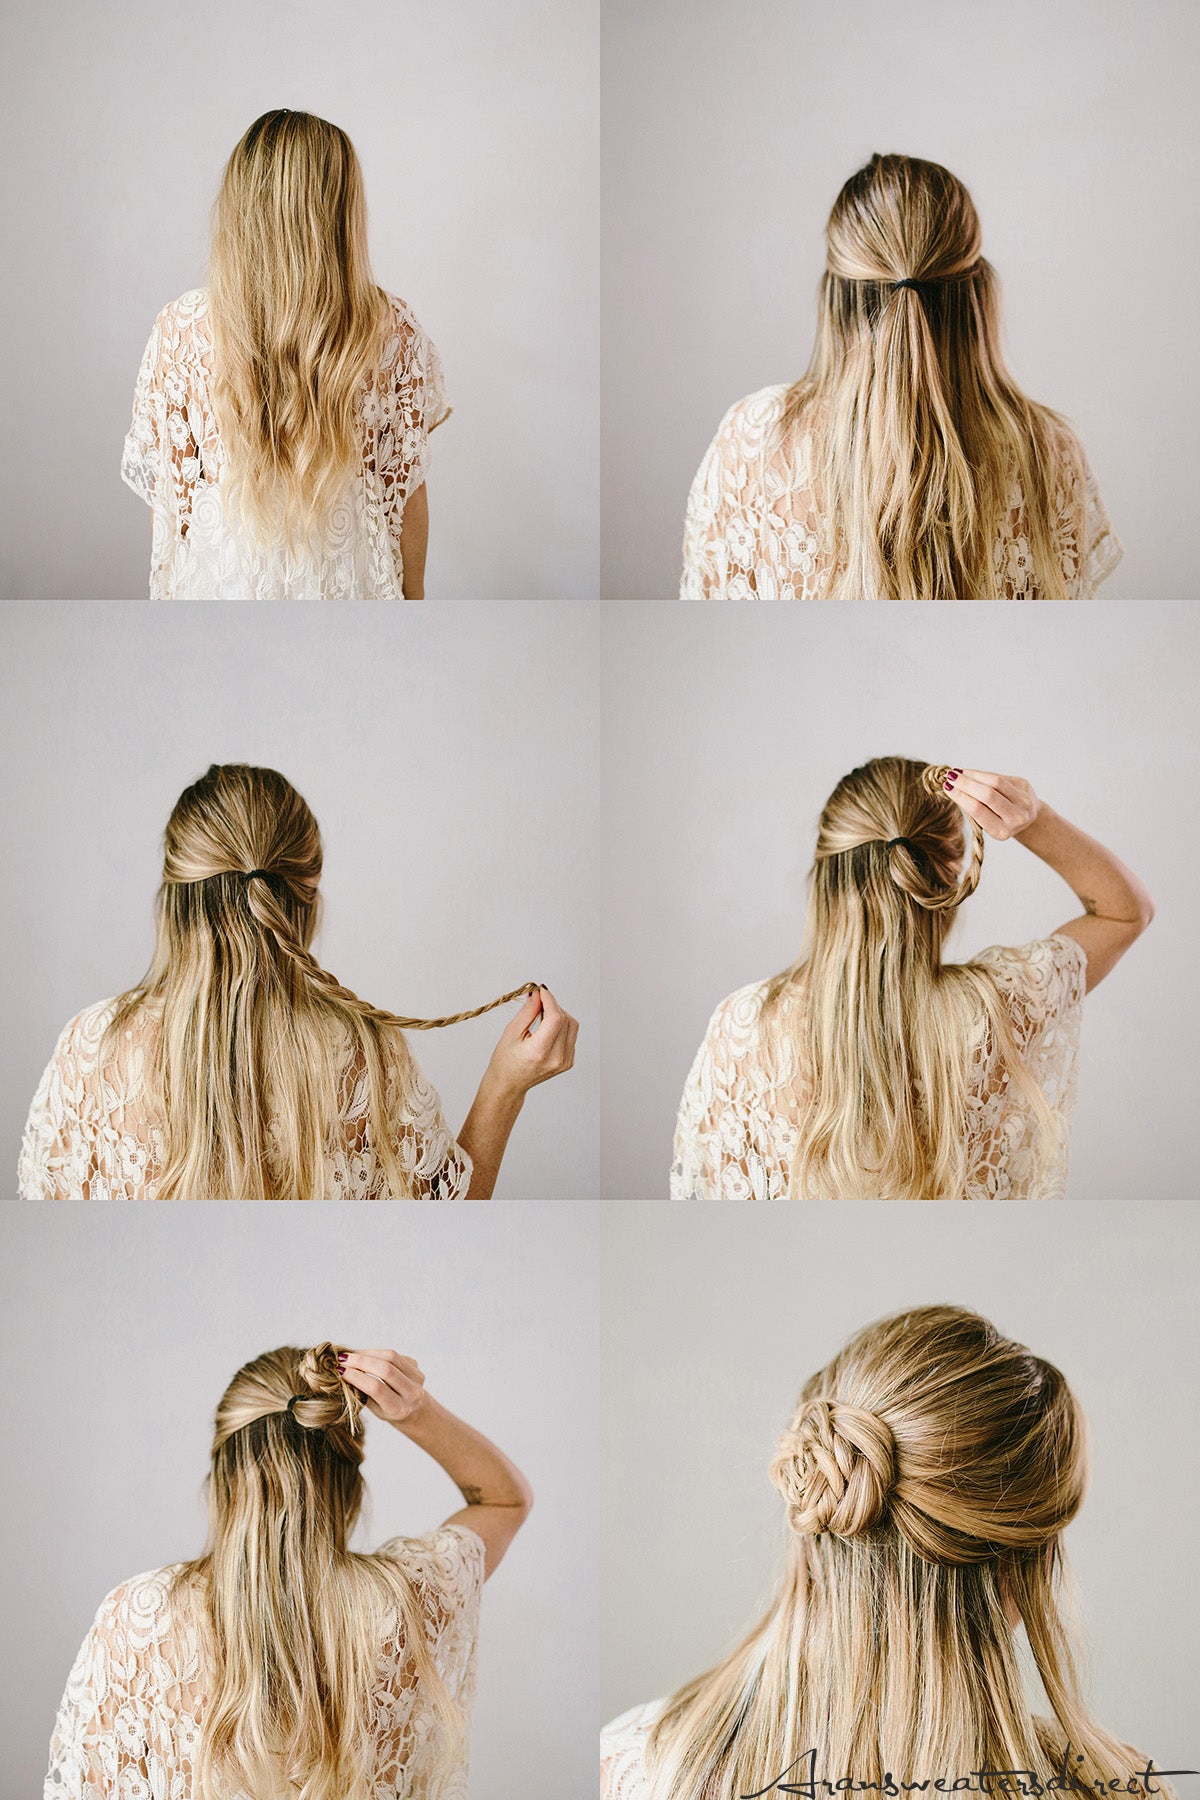 How to: DIY Rose Bun Hair Tutorial #hair #tutorial #bun